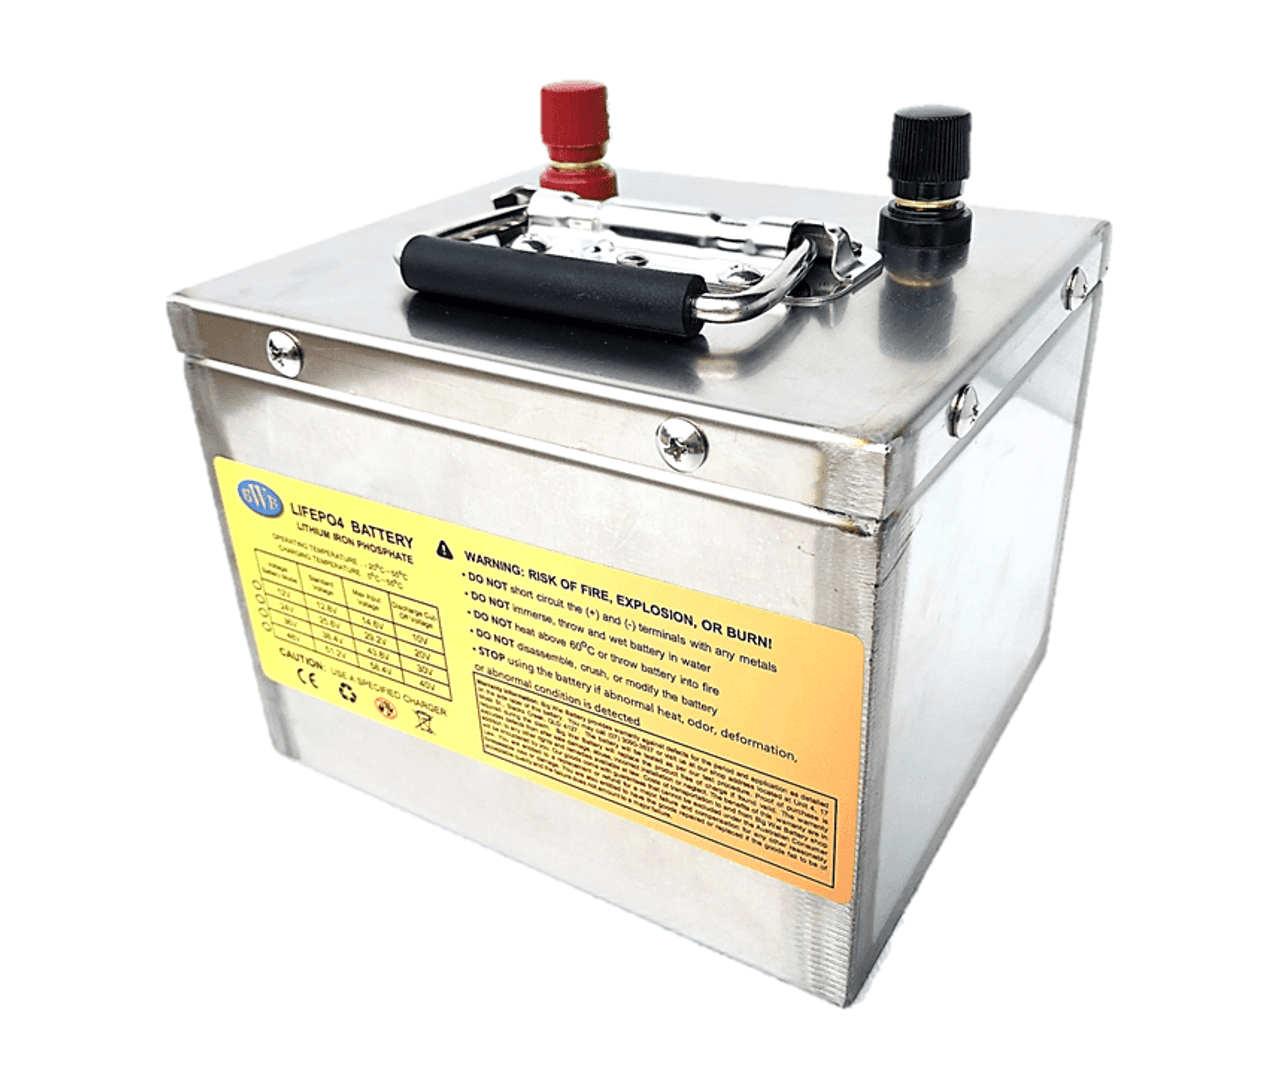 BWB 12.8V 50Ah 640WH Lithium Iron LiFePO4 Deep Cycle Battery Stainless Box - with Bluetooth Monitoring